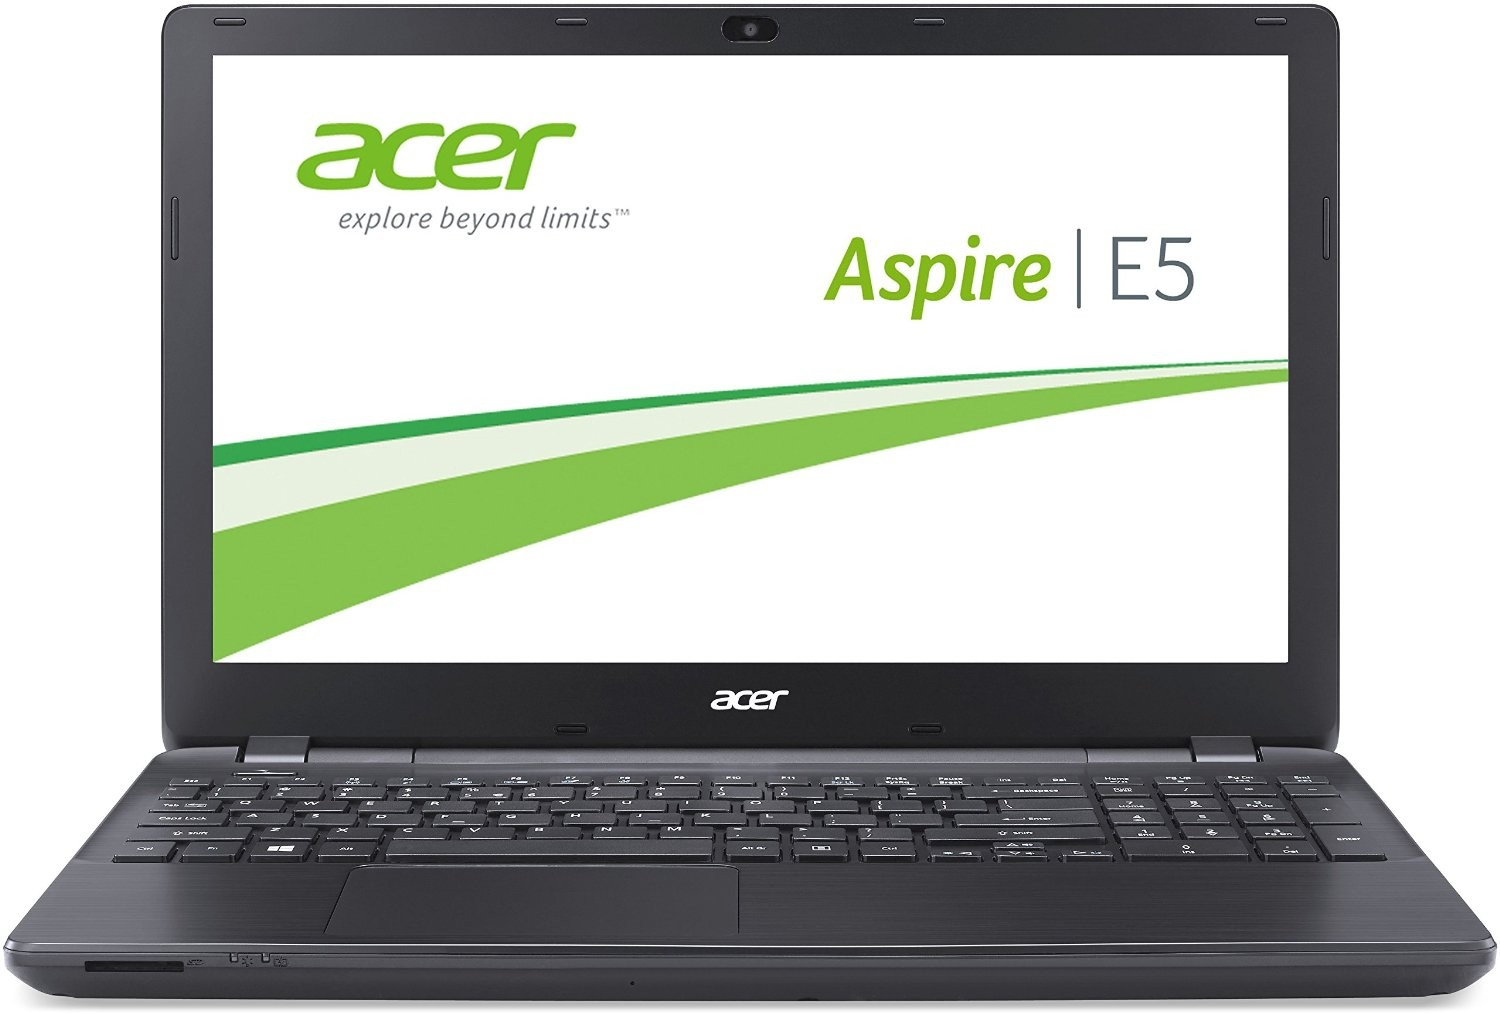 Acer Aspire E5-571-38NJ 15,6 Zoll Notebook